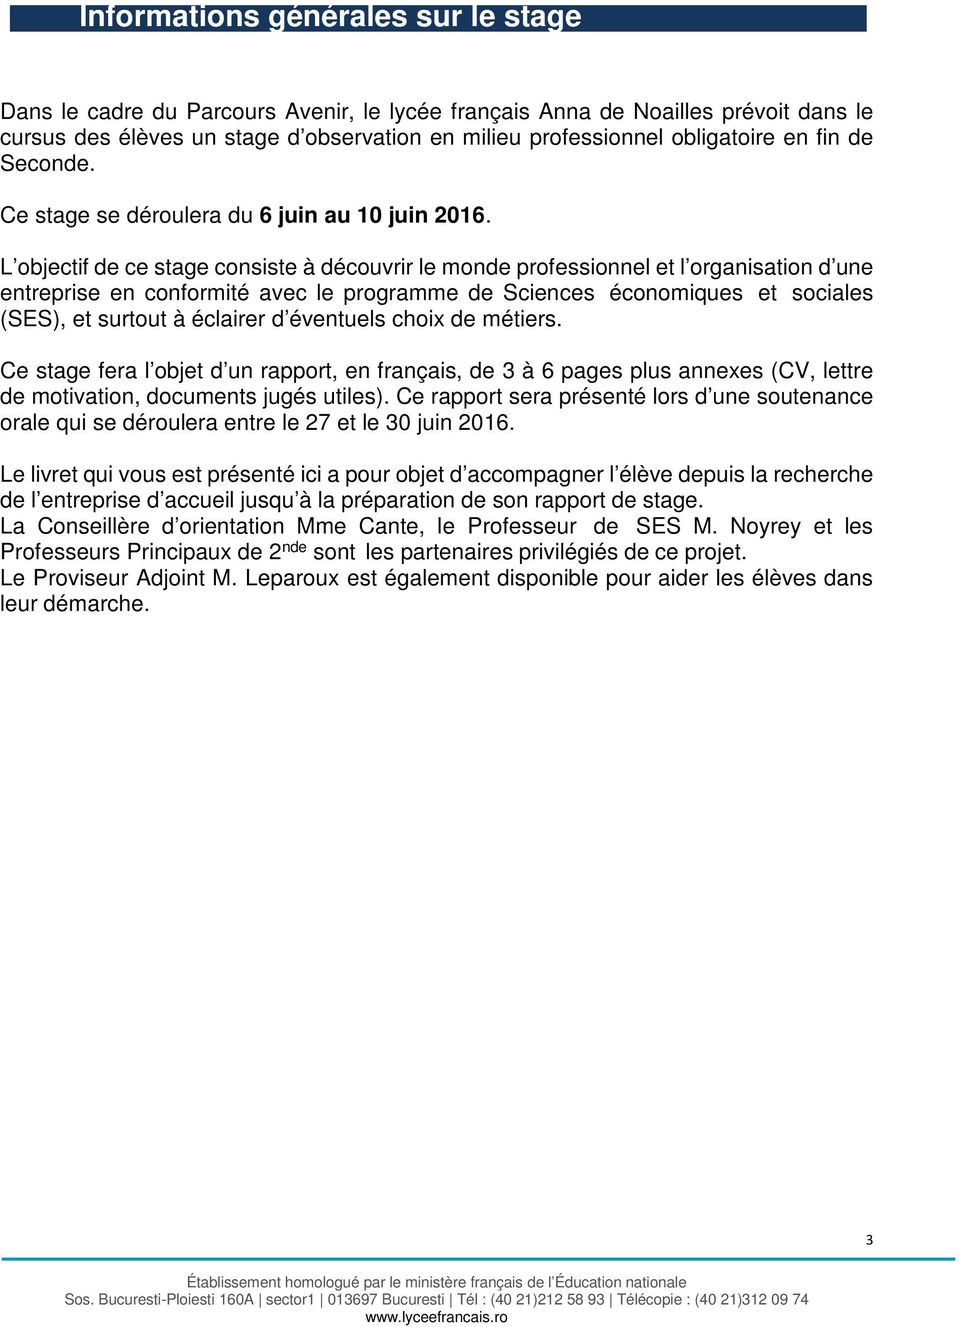 rapport de stage de seconde